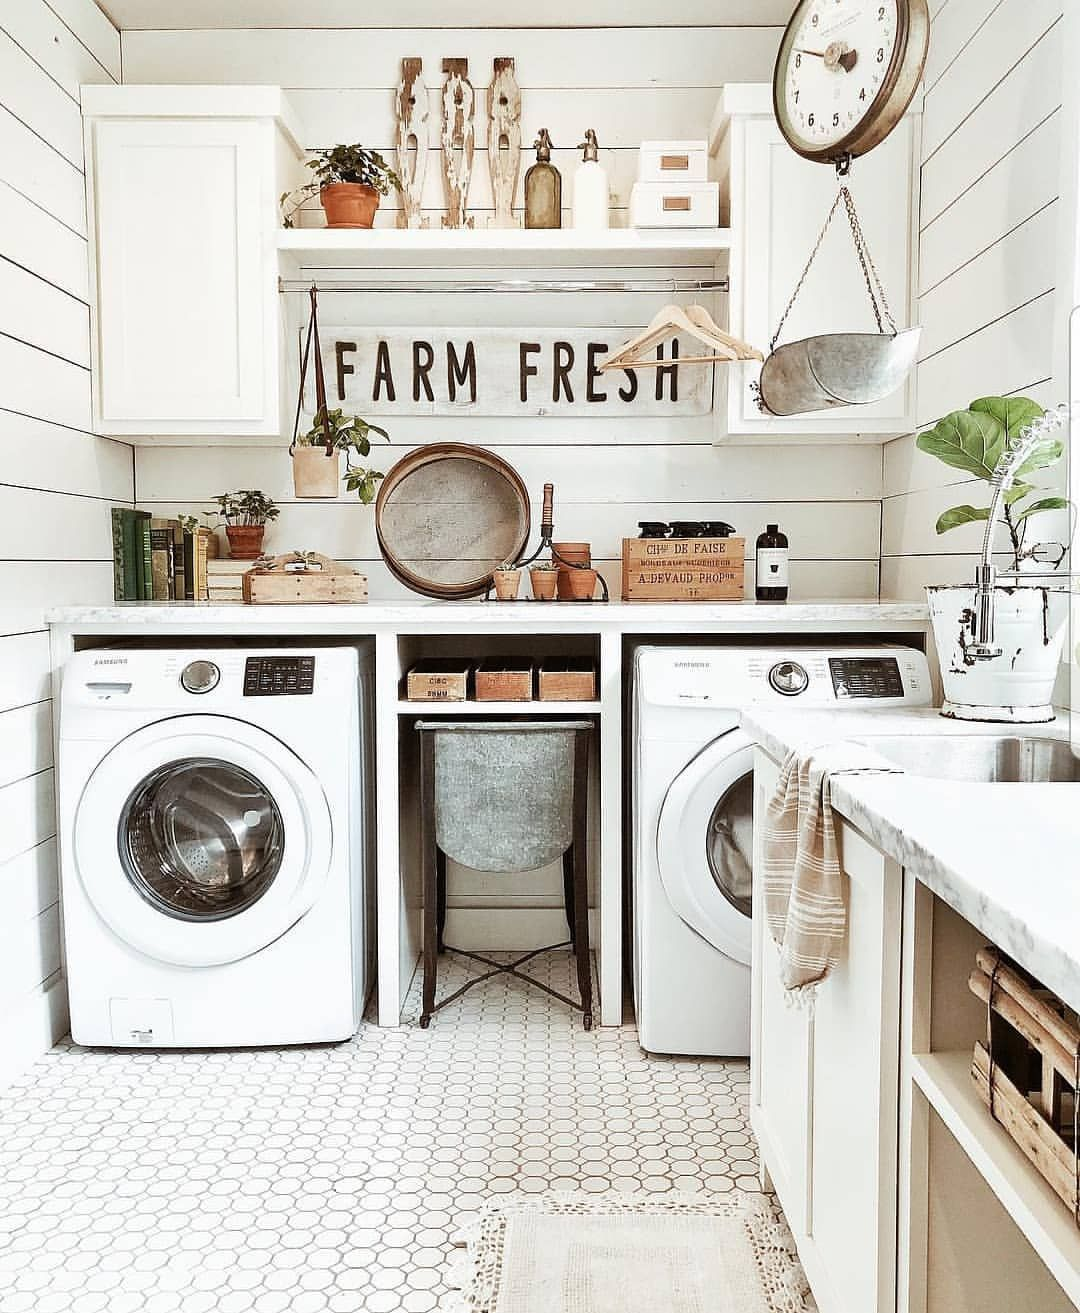 Pinterest // @taylorellen8 | Large laundry rooms, Laundry room ...